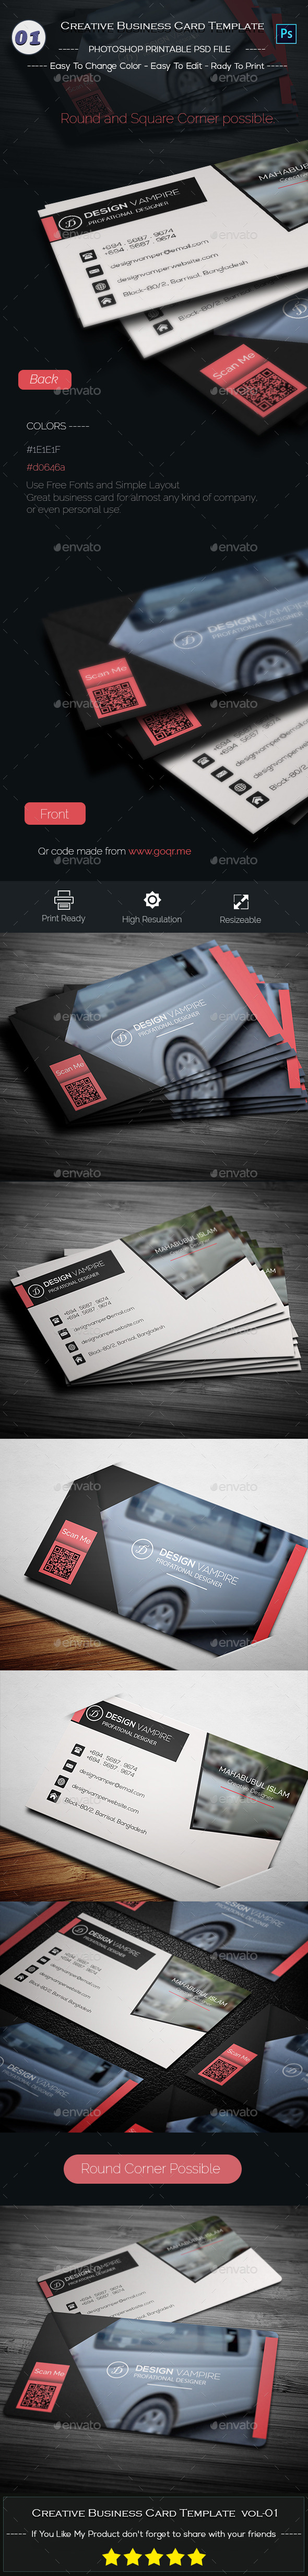 GraphicRiver Creative Business Card Template 9555093